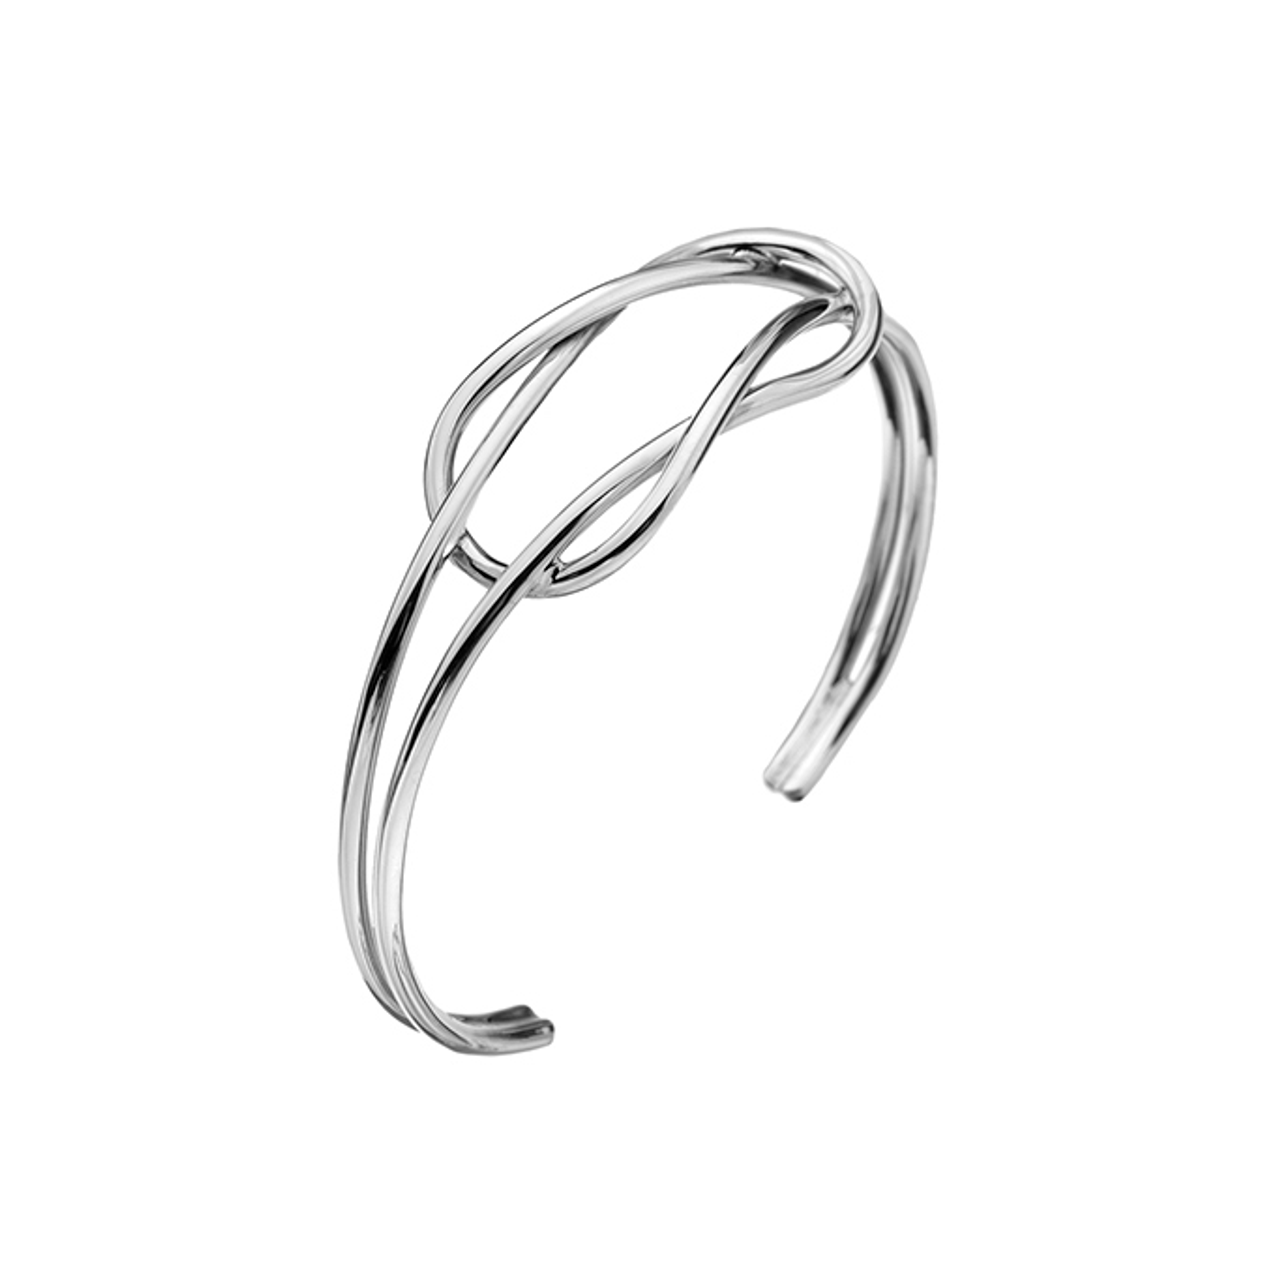 Silver double wire reef knot Torque Bangle